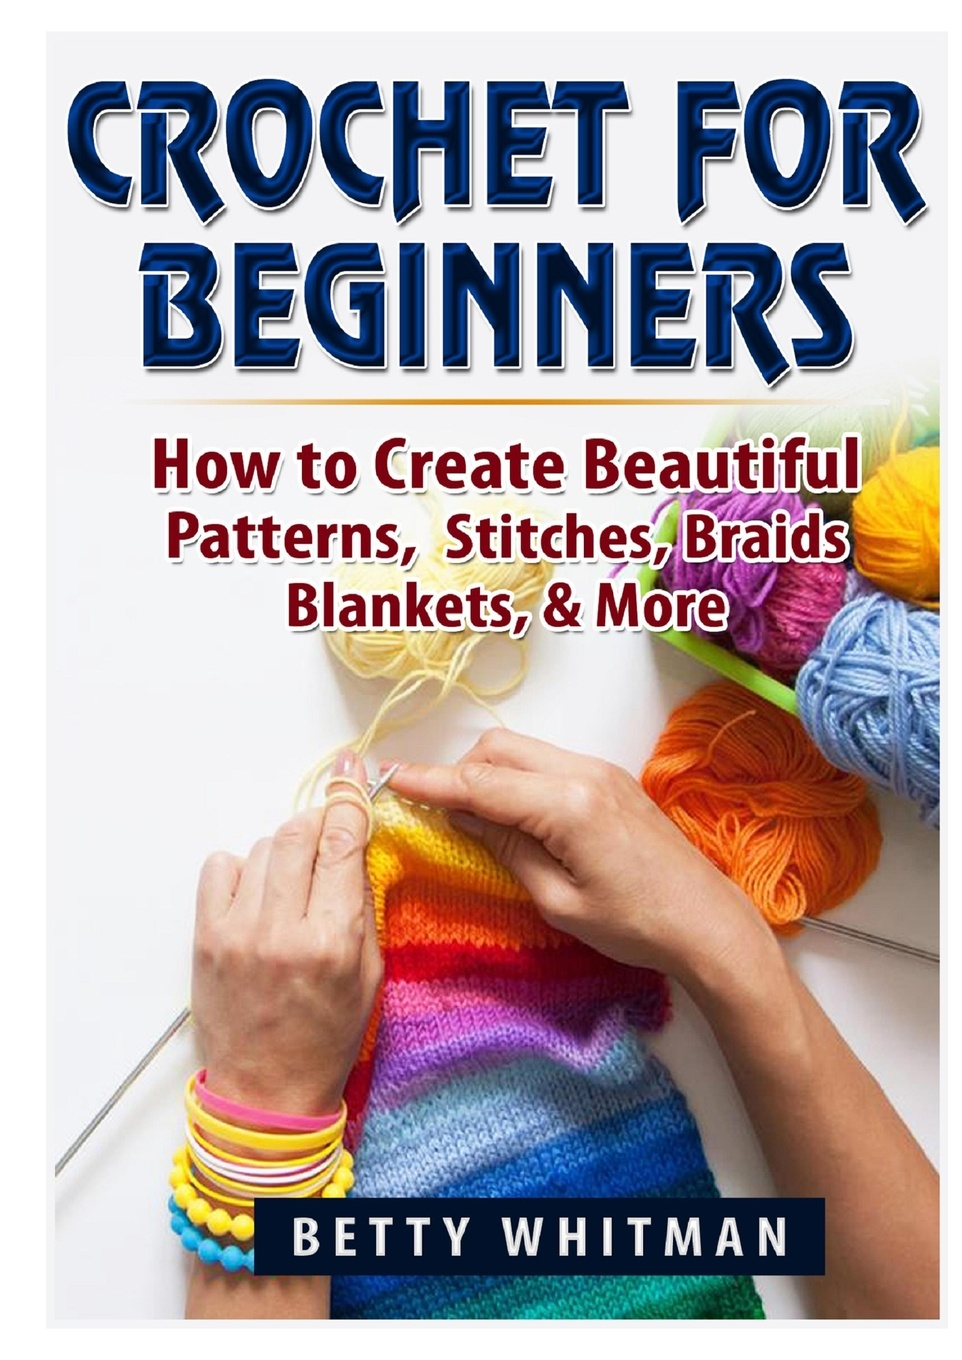 Betty Whitman Crochet for Beginners. How to Create Beautiful Patterns, Stitches, Braids, Blankets, & More michael burchell no excuses how you can turn any workplace into a great one